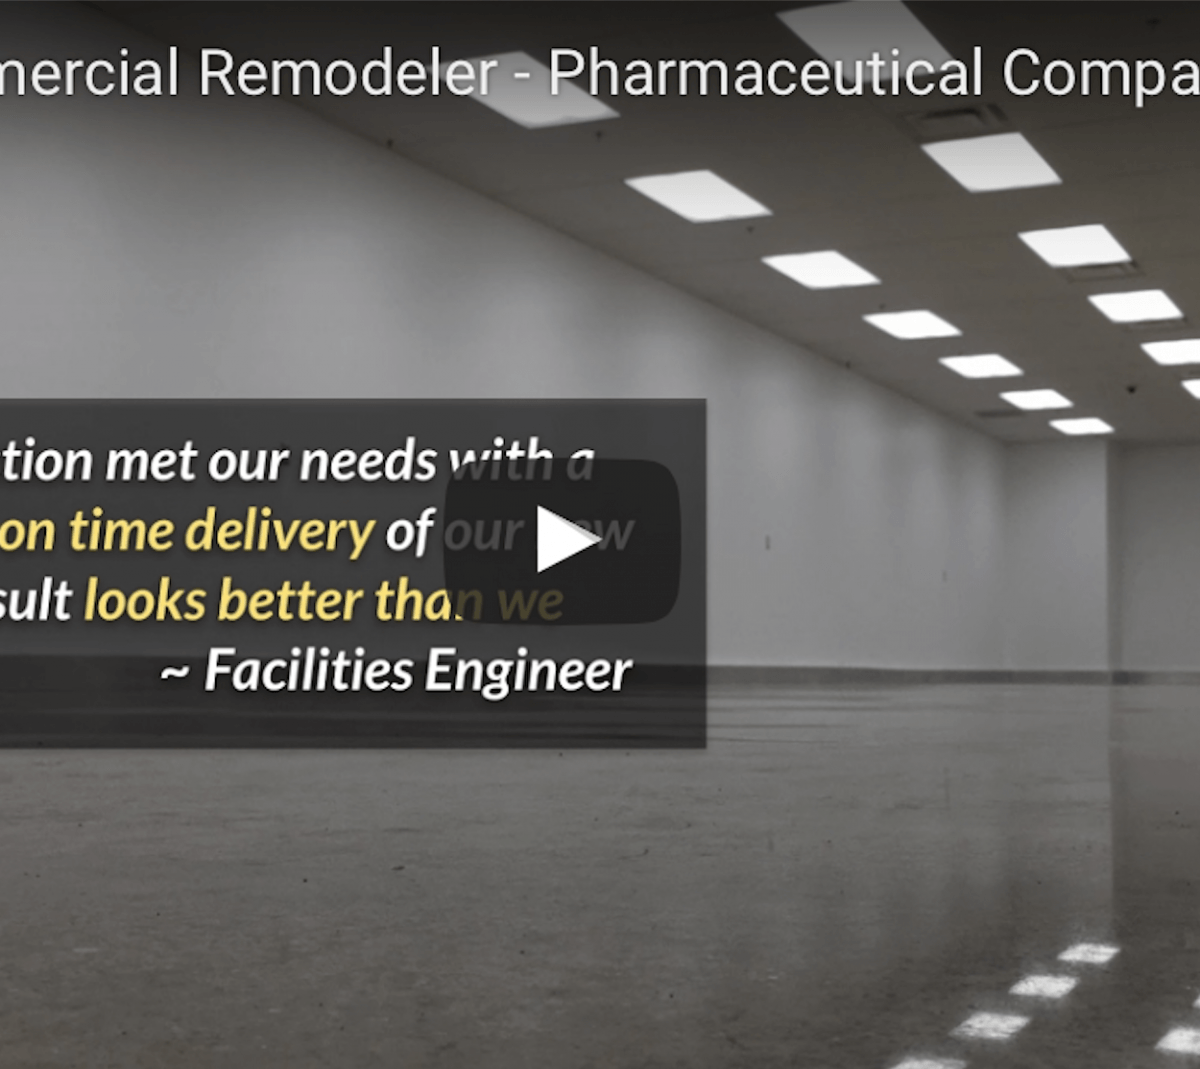 Pharmaceutical Commercial Remodeling – Video